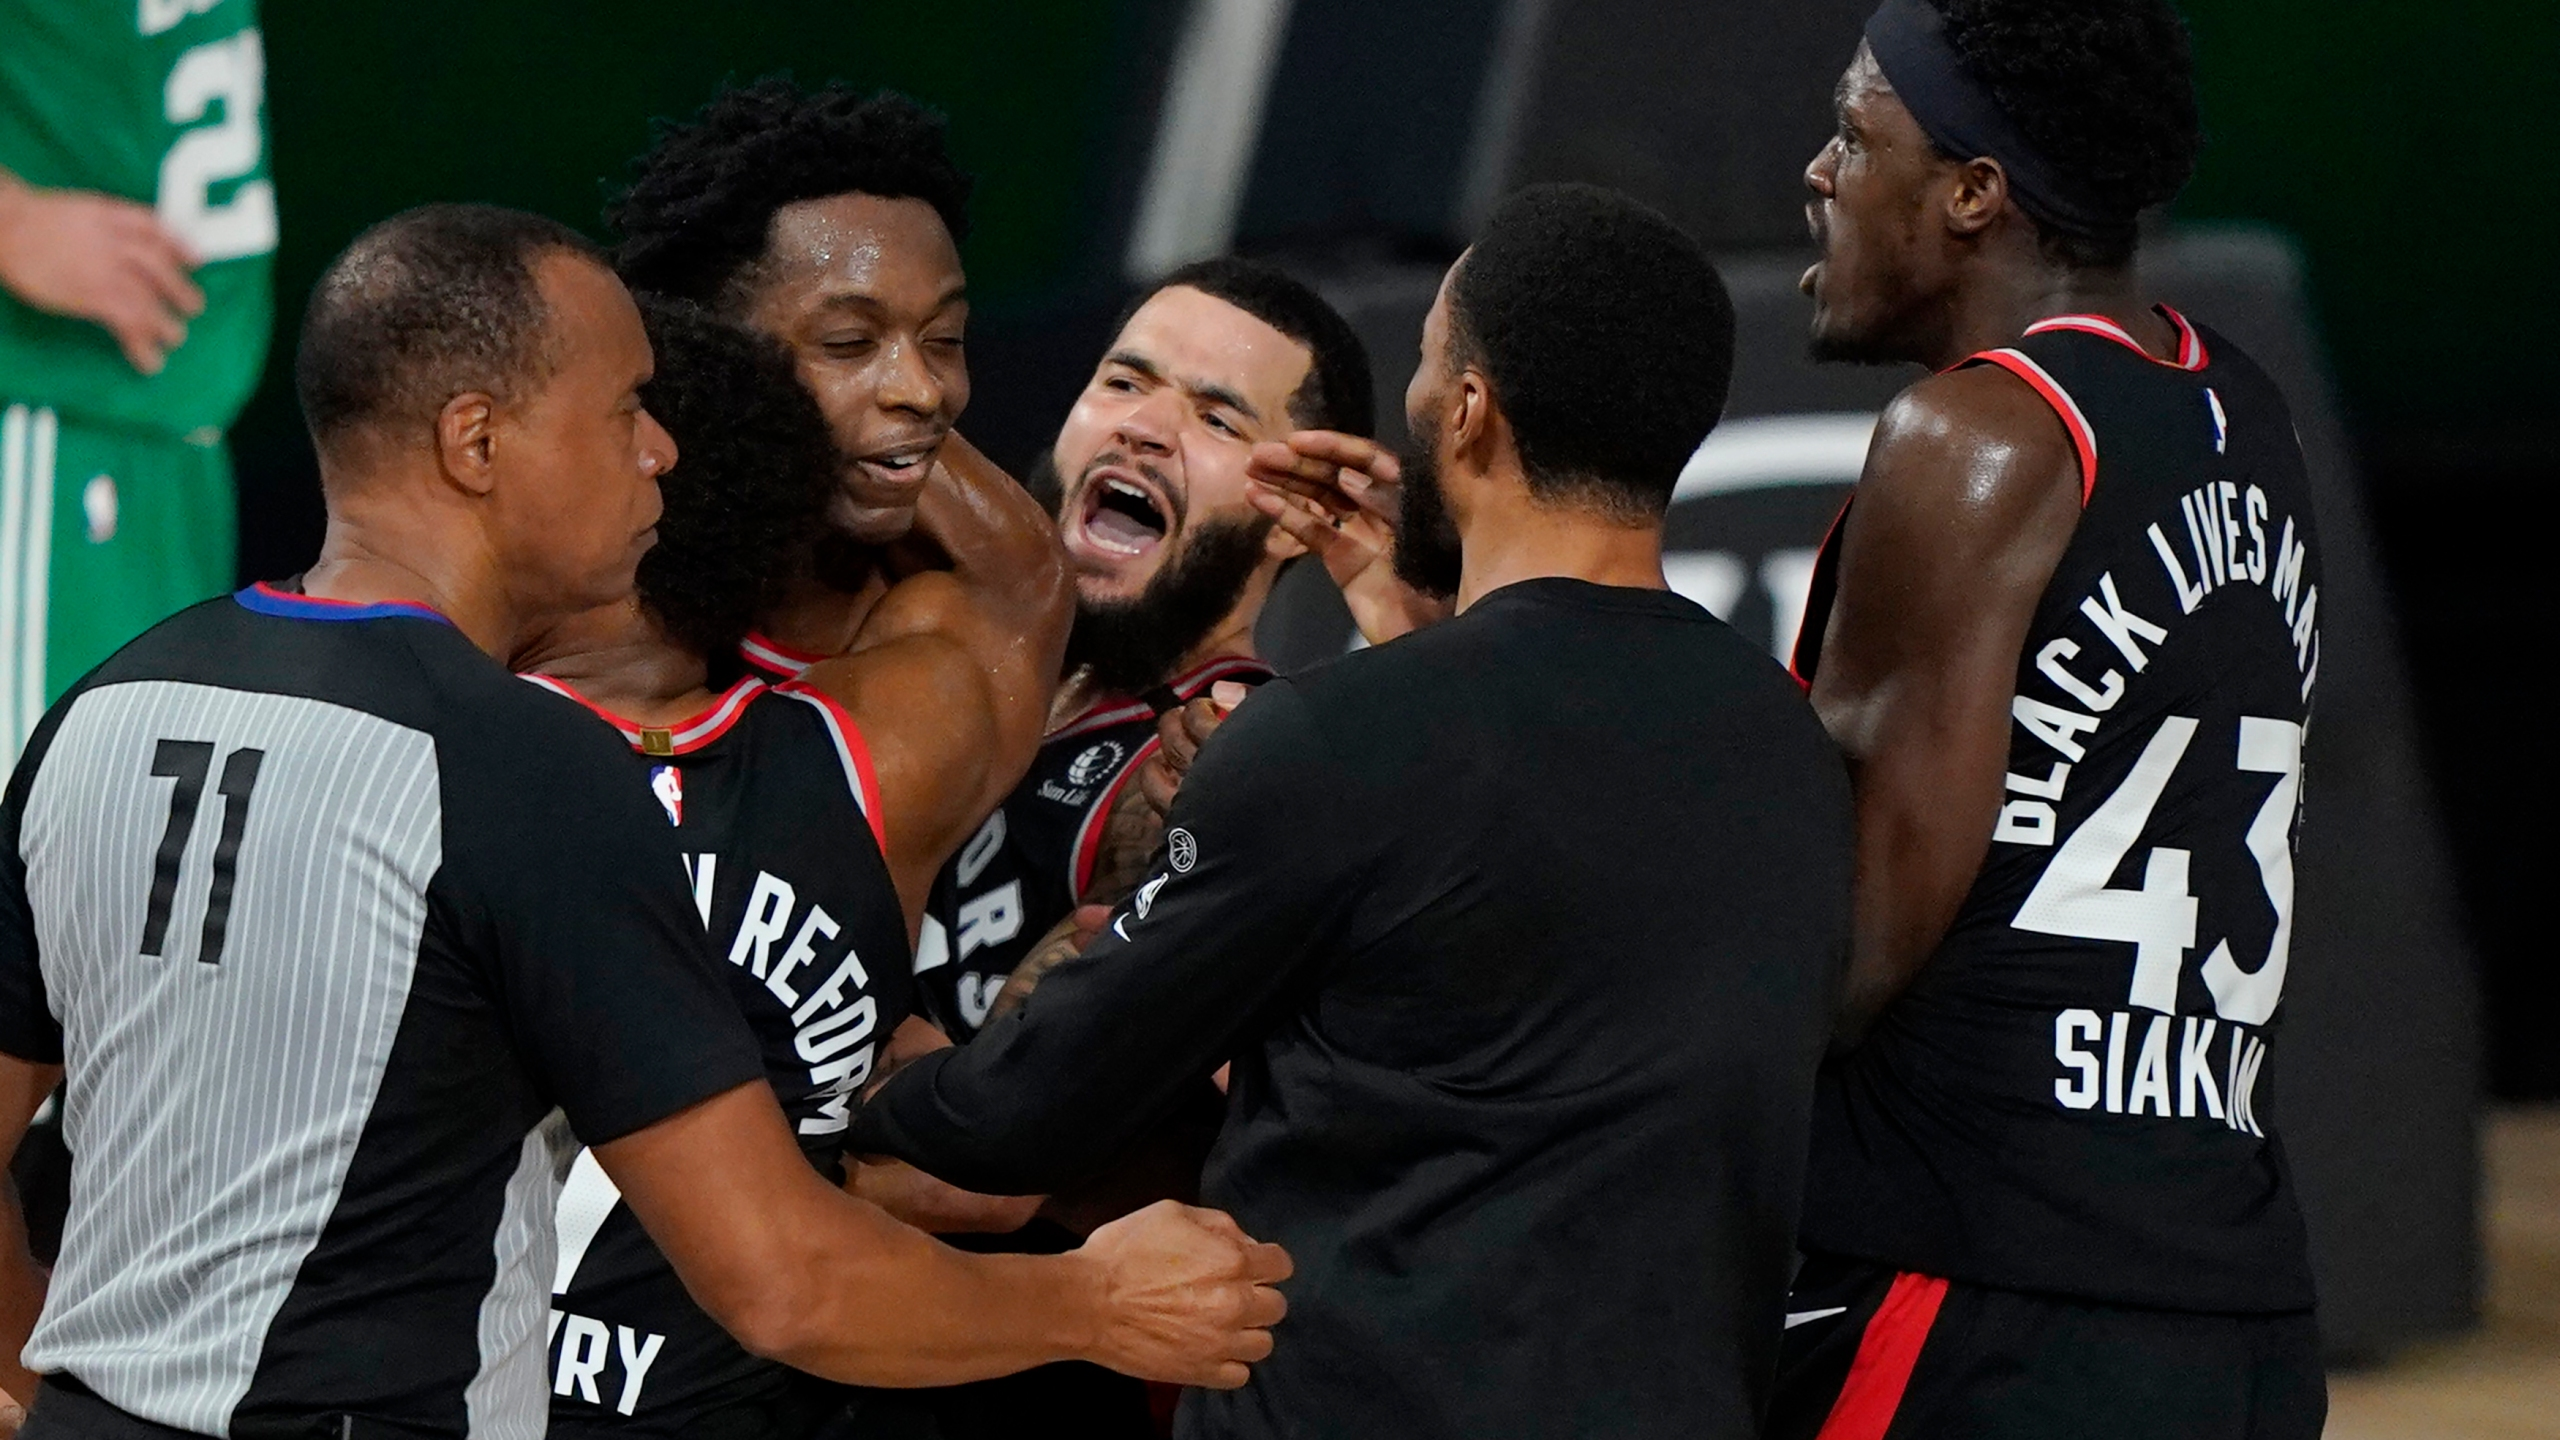 Holston Halloween Flash Mob 2020 Raptors Celtics prep for Game 4, Nuggets Clippers for Game 2